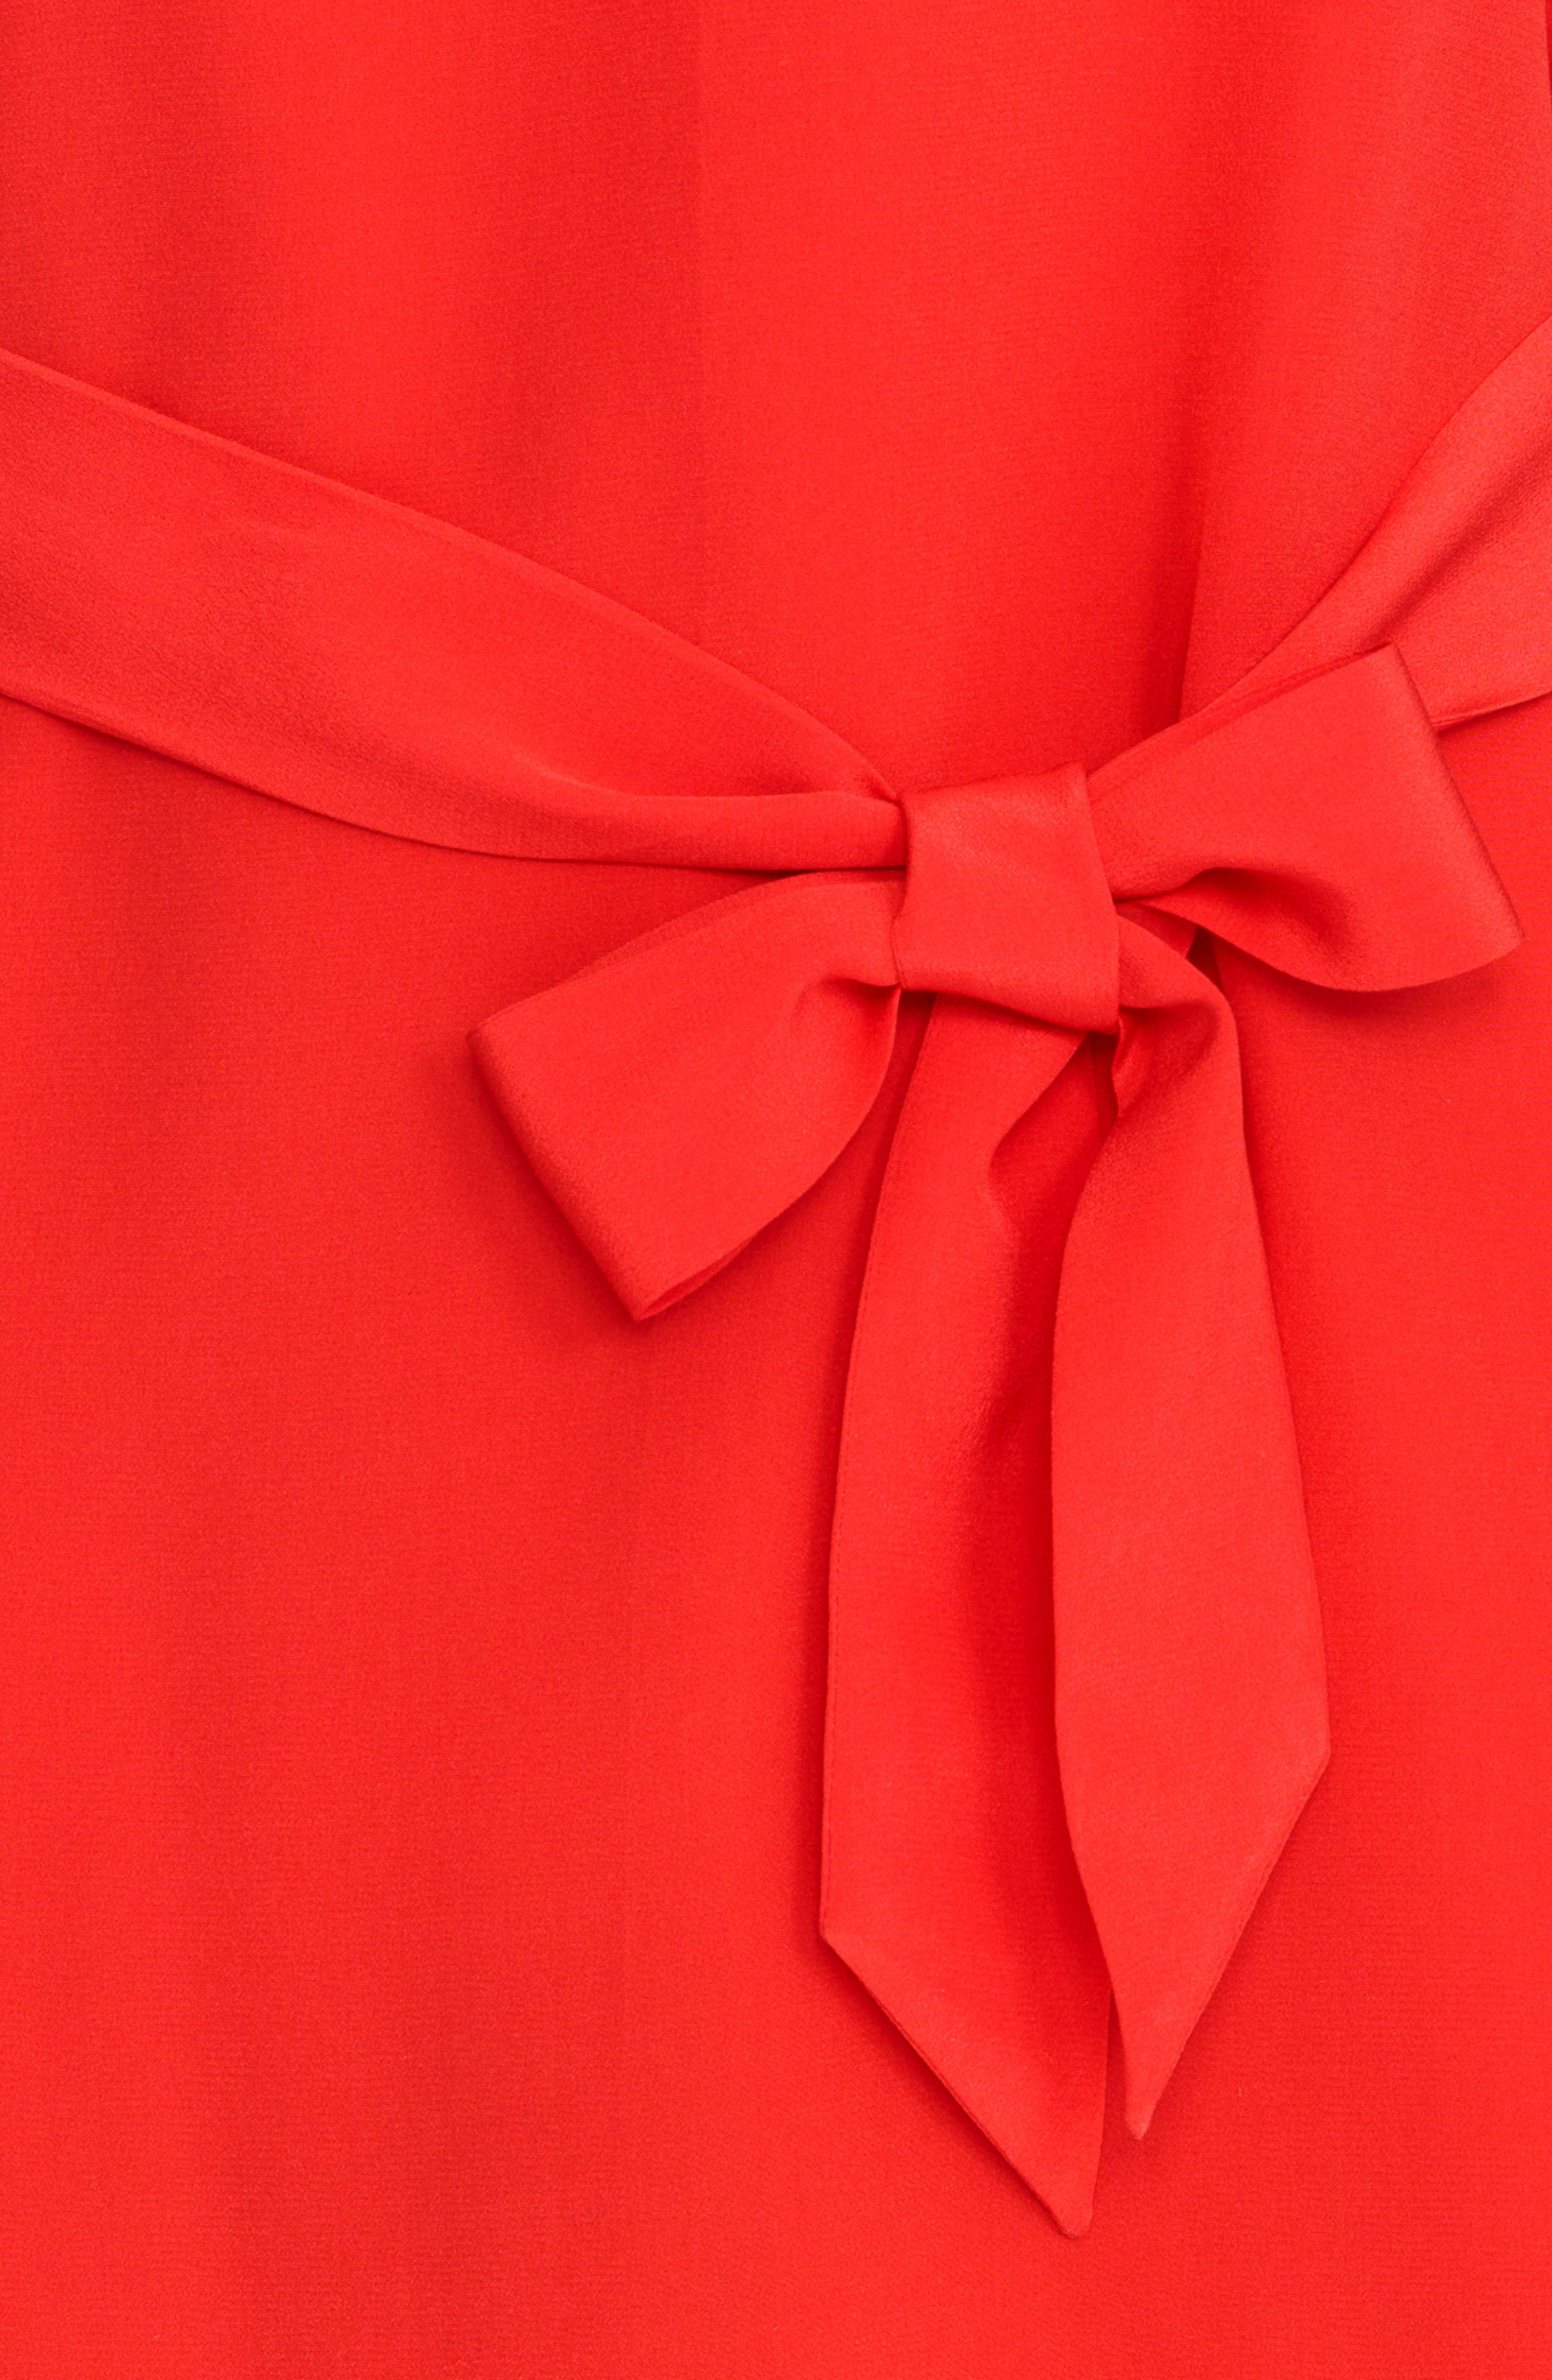 Anabella Belted Silk Dress,                             Alternate thumbnail 5, color,                             Coral Red